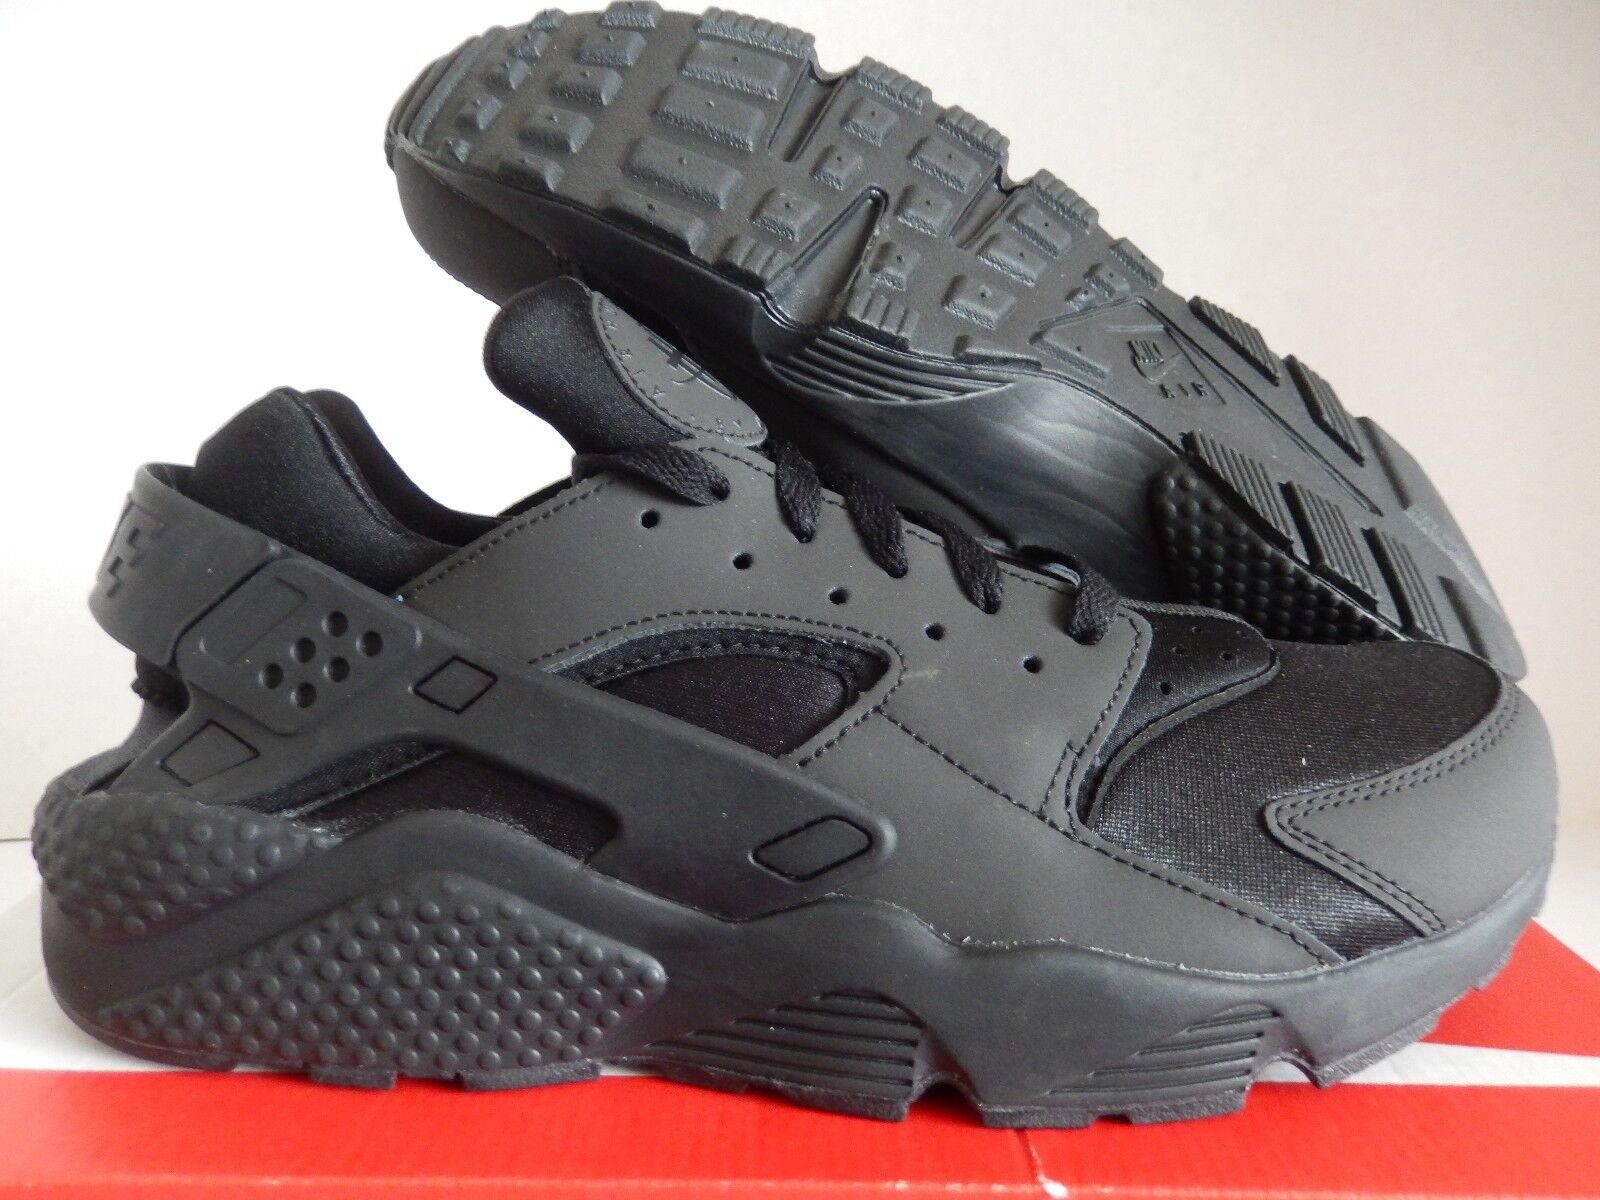 NIKE AIR HUARACHE ID BLACK-DARK GREY SZ 11.5 [777330-978]